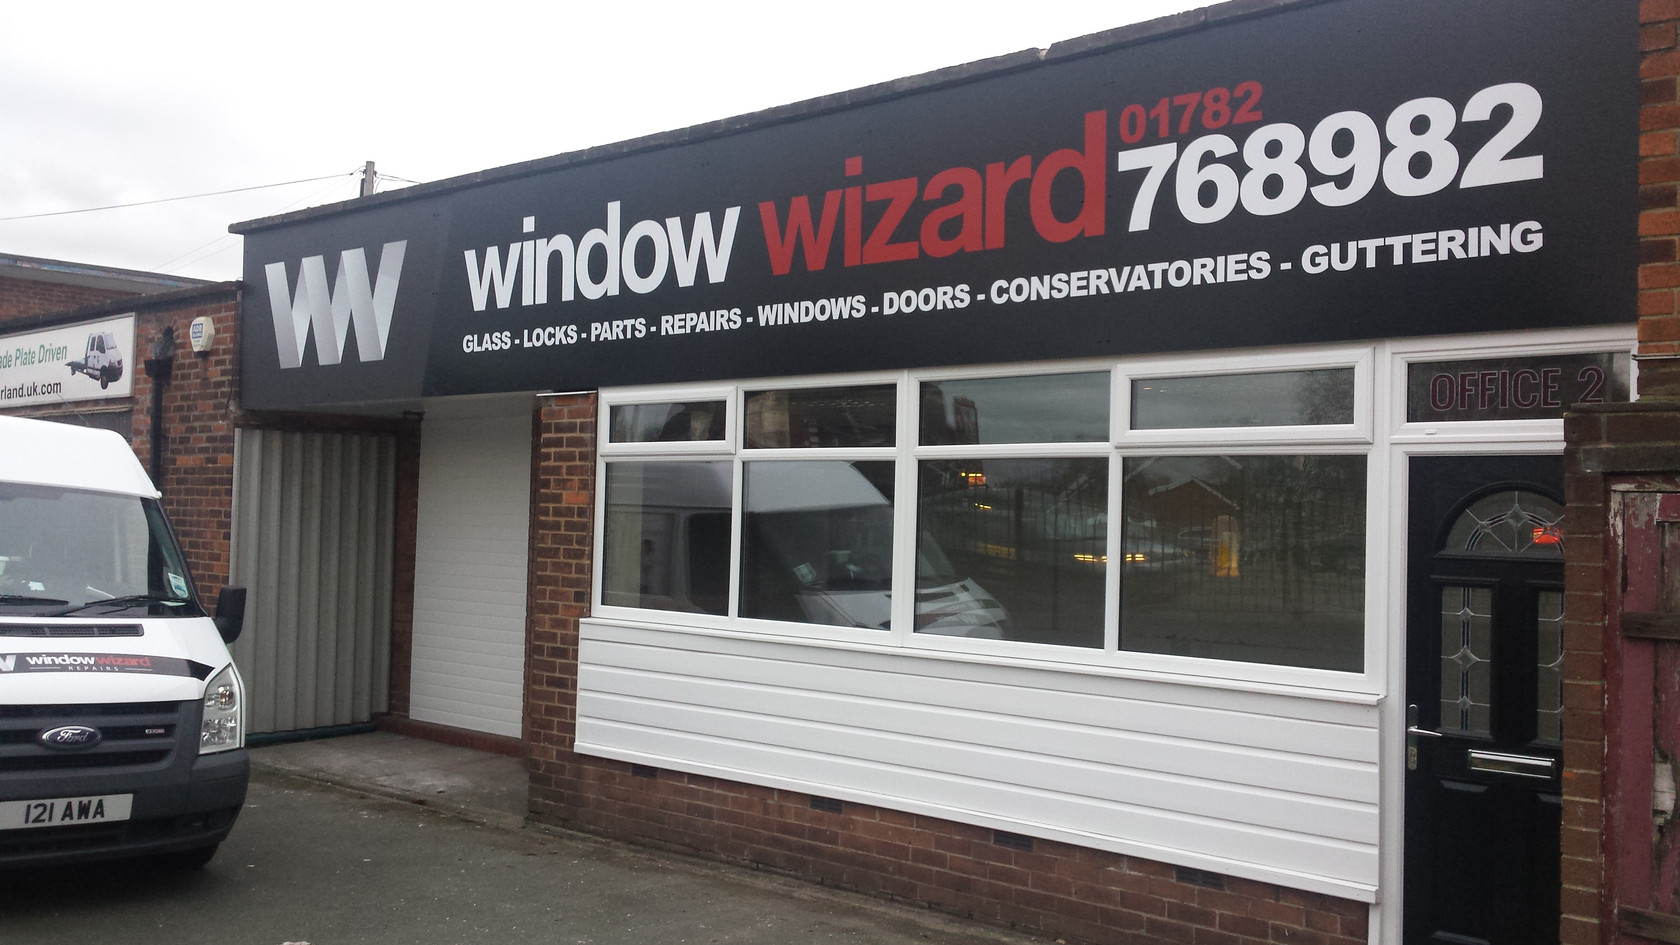 LOW COST & LOCAL WINDOW & DOOR REPAIRS, GLASS & LOCKSMITH IN STOKE-ON-TRENT, STAFFORDSHIRE, CHESHIRE & DERBYSHIRE.